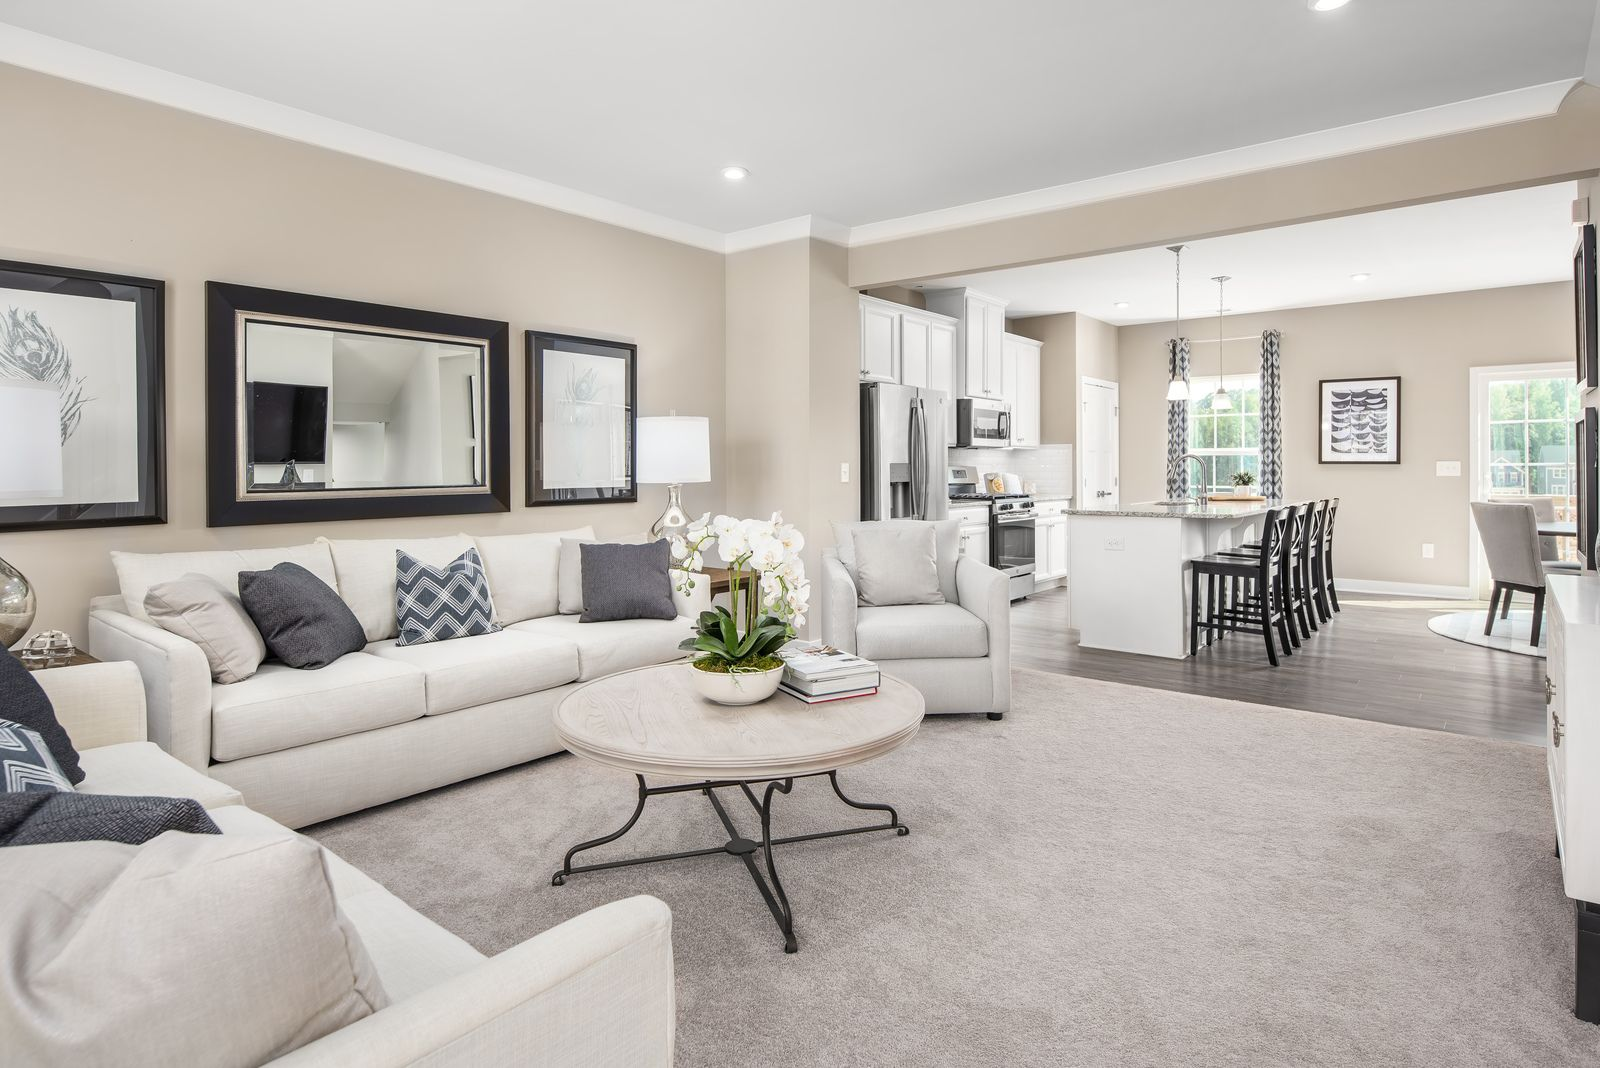 Living Area featured in the Mendelssohn with 1-Car Garage By Ryan Homes in Philadelphia, NJ